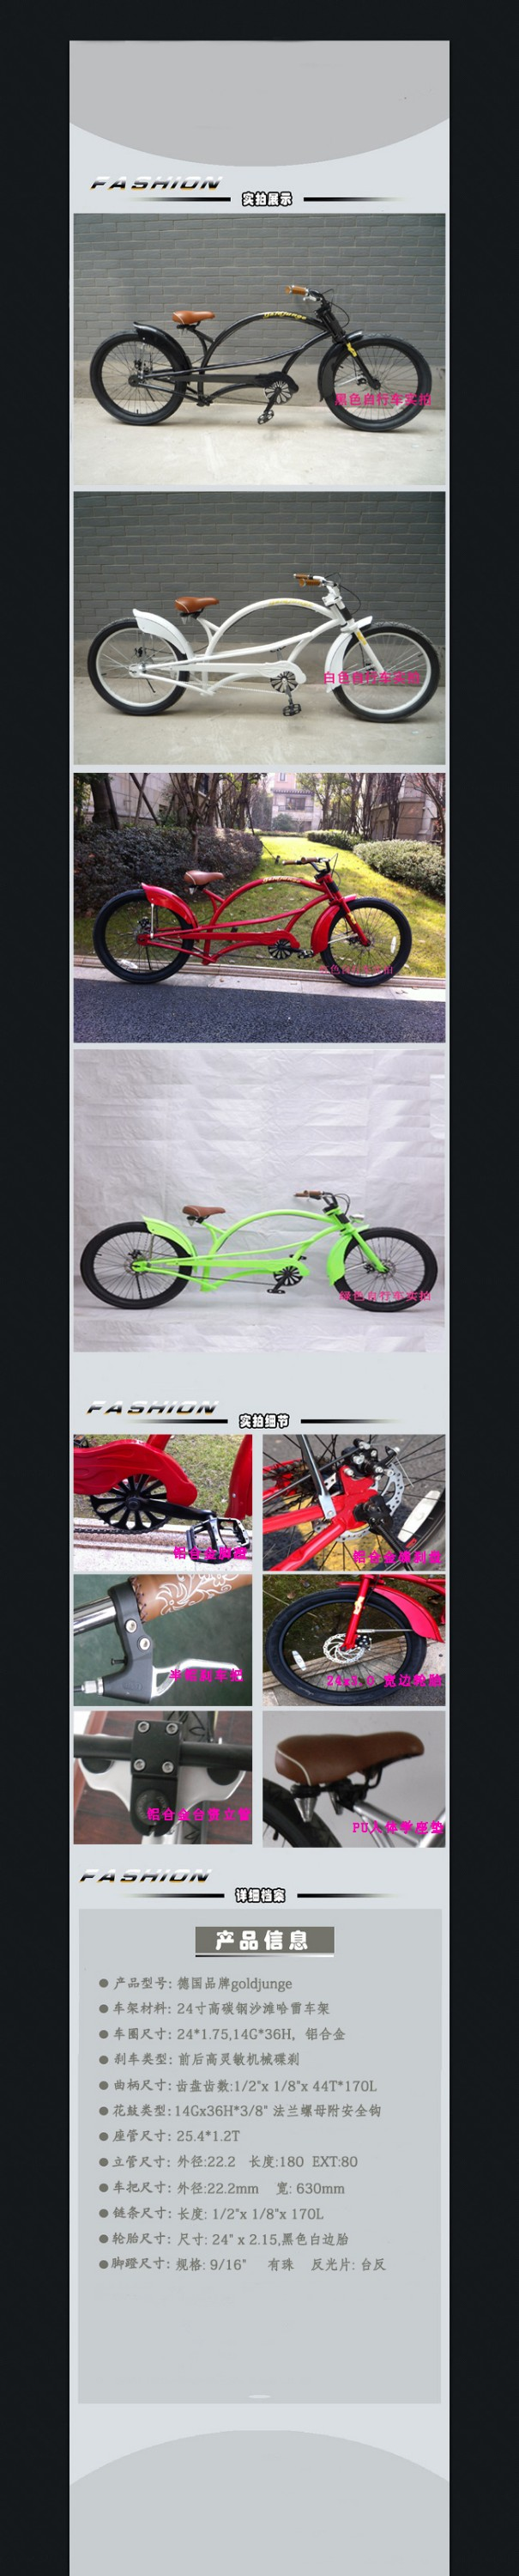 24 long new model single speed chopper beach cruiser bike